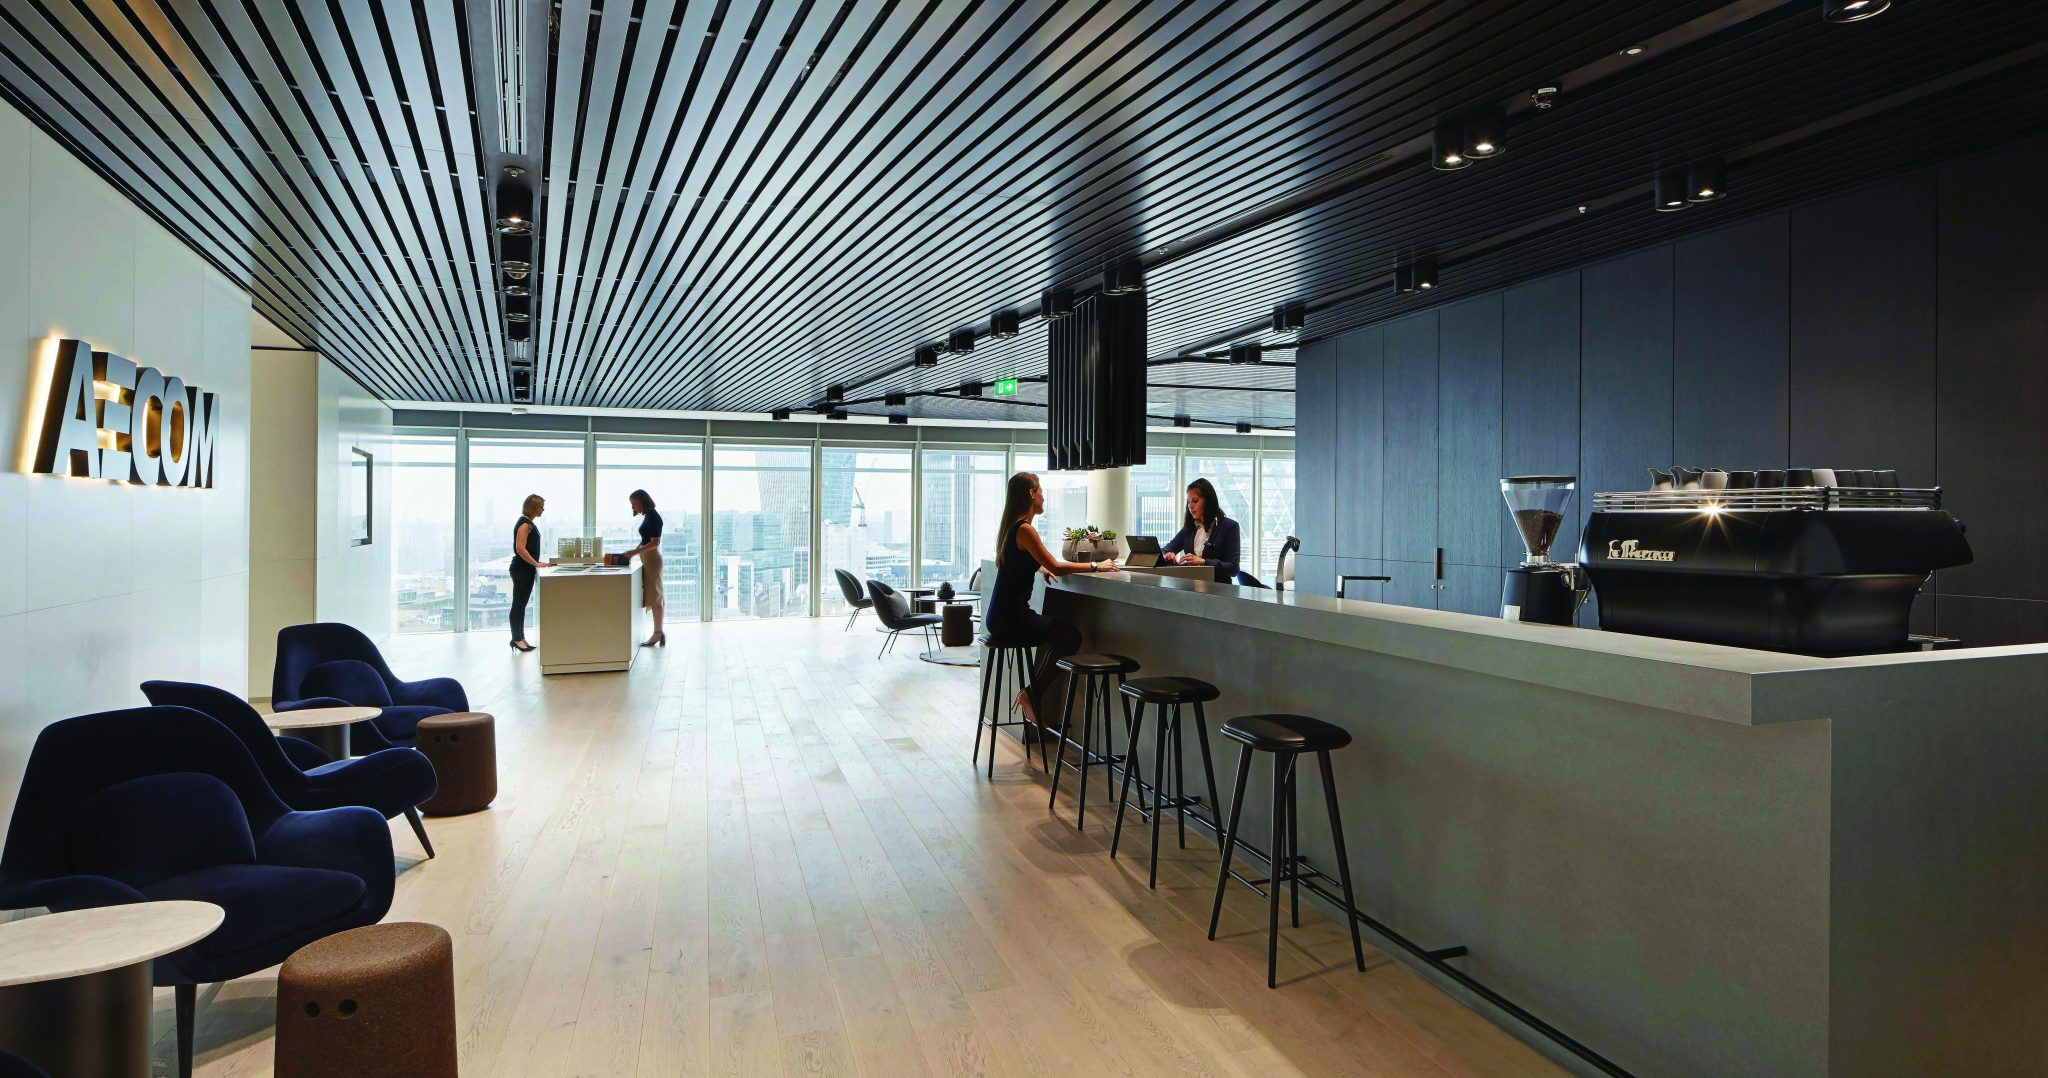 Exceptional The Building Has High Spec Catering Facilities © Hufton+Crow